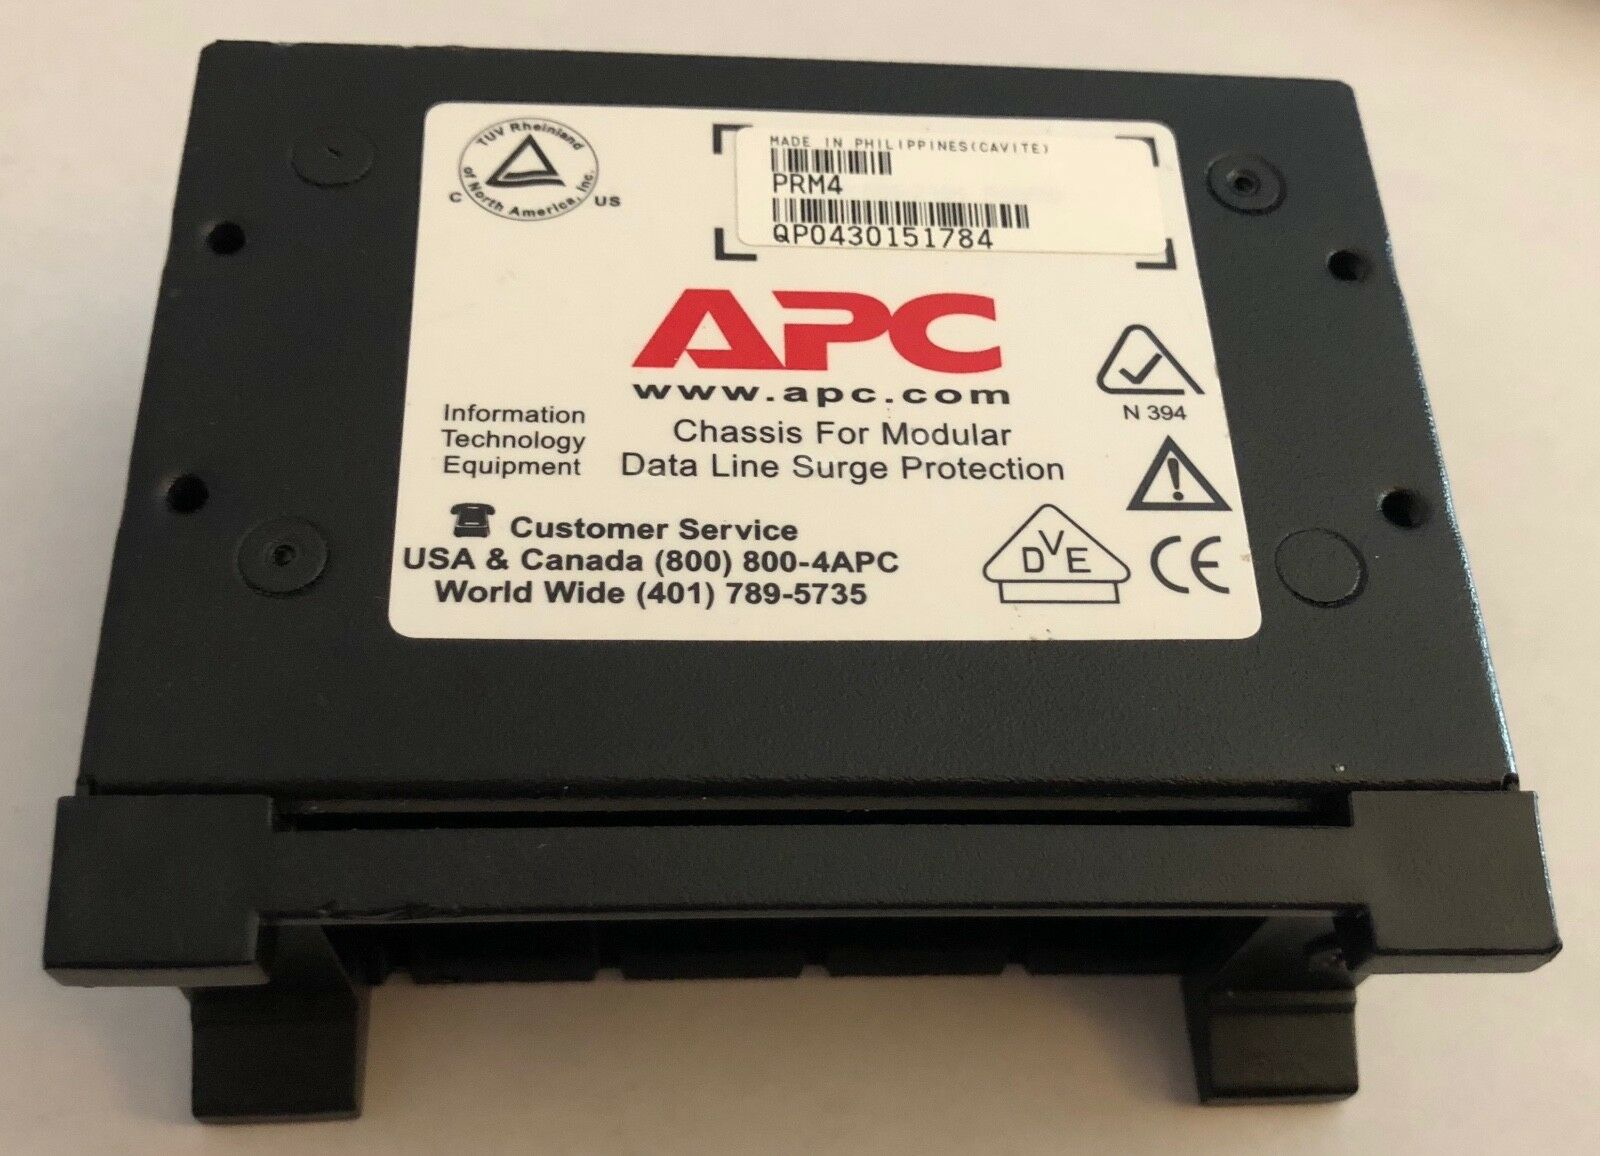 APC BY SCHNEIDER ELECTRIC PRM4 4 POSITION CHASSIS 1U FOR REPLACEABLE DATA L...